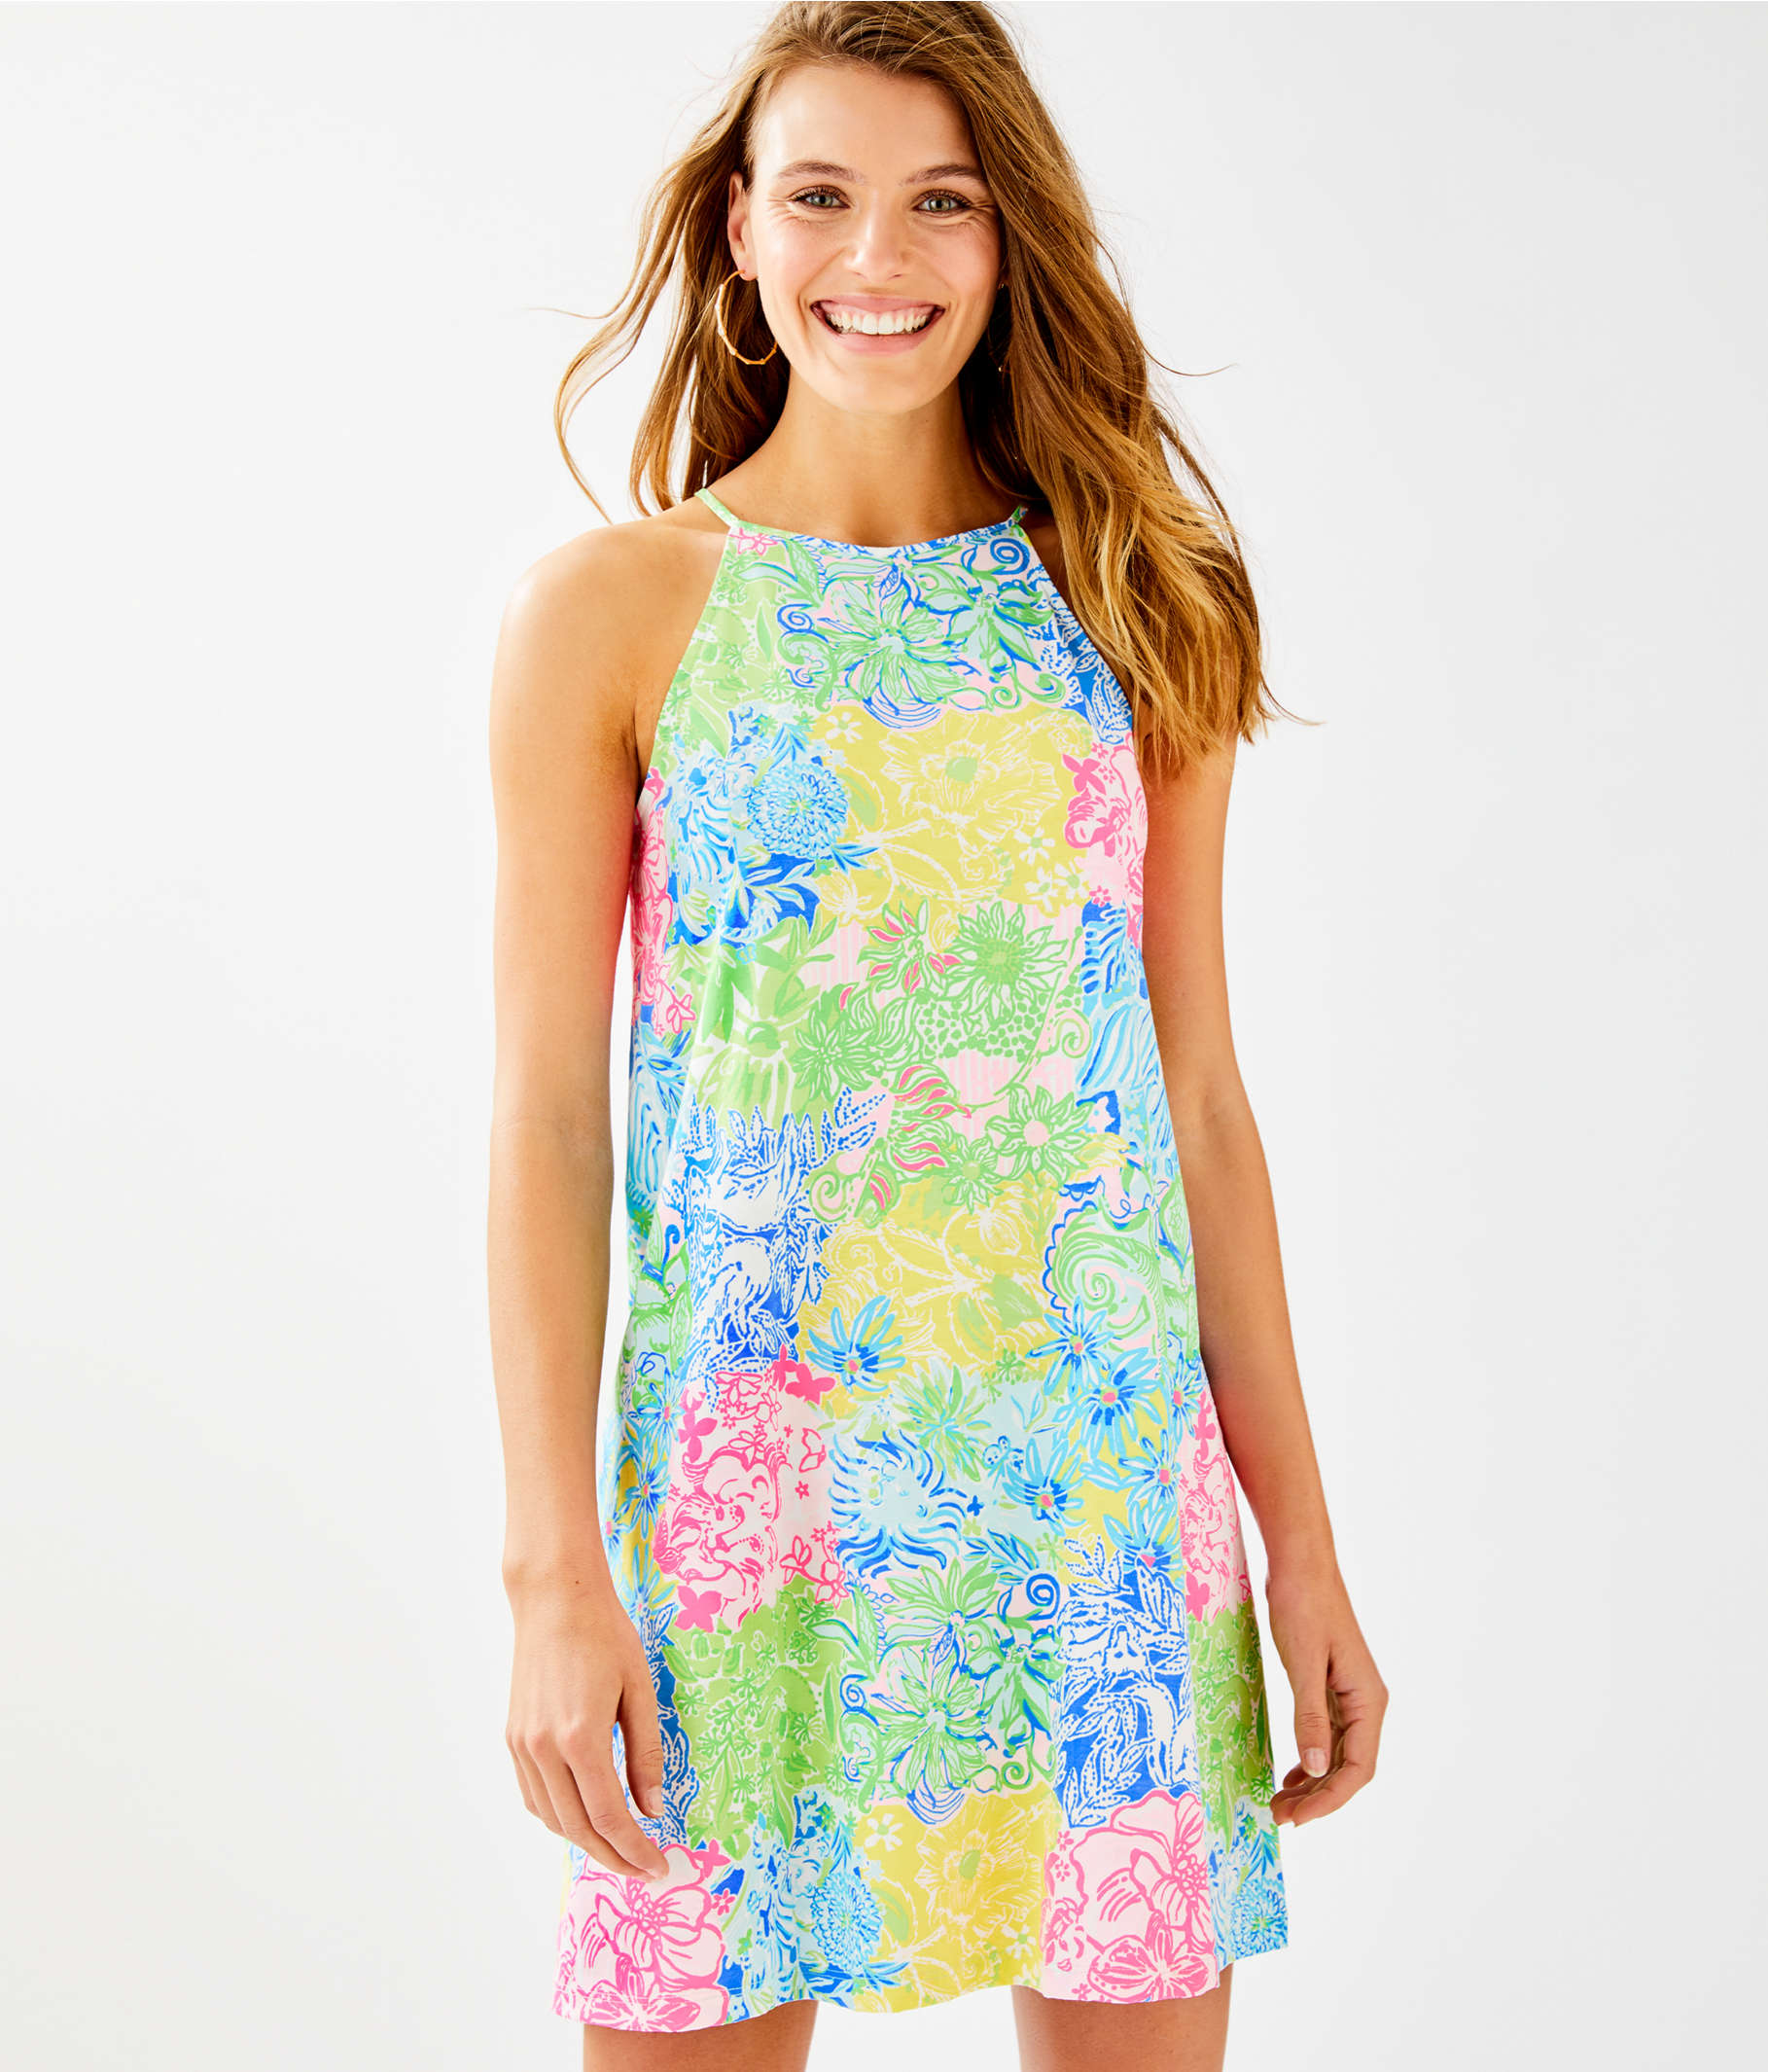 Image result for lilly pulitzer margot dress